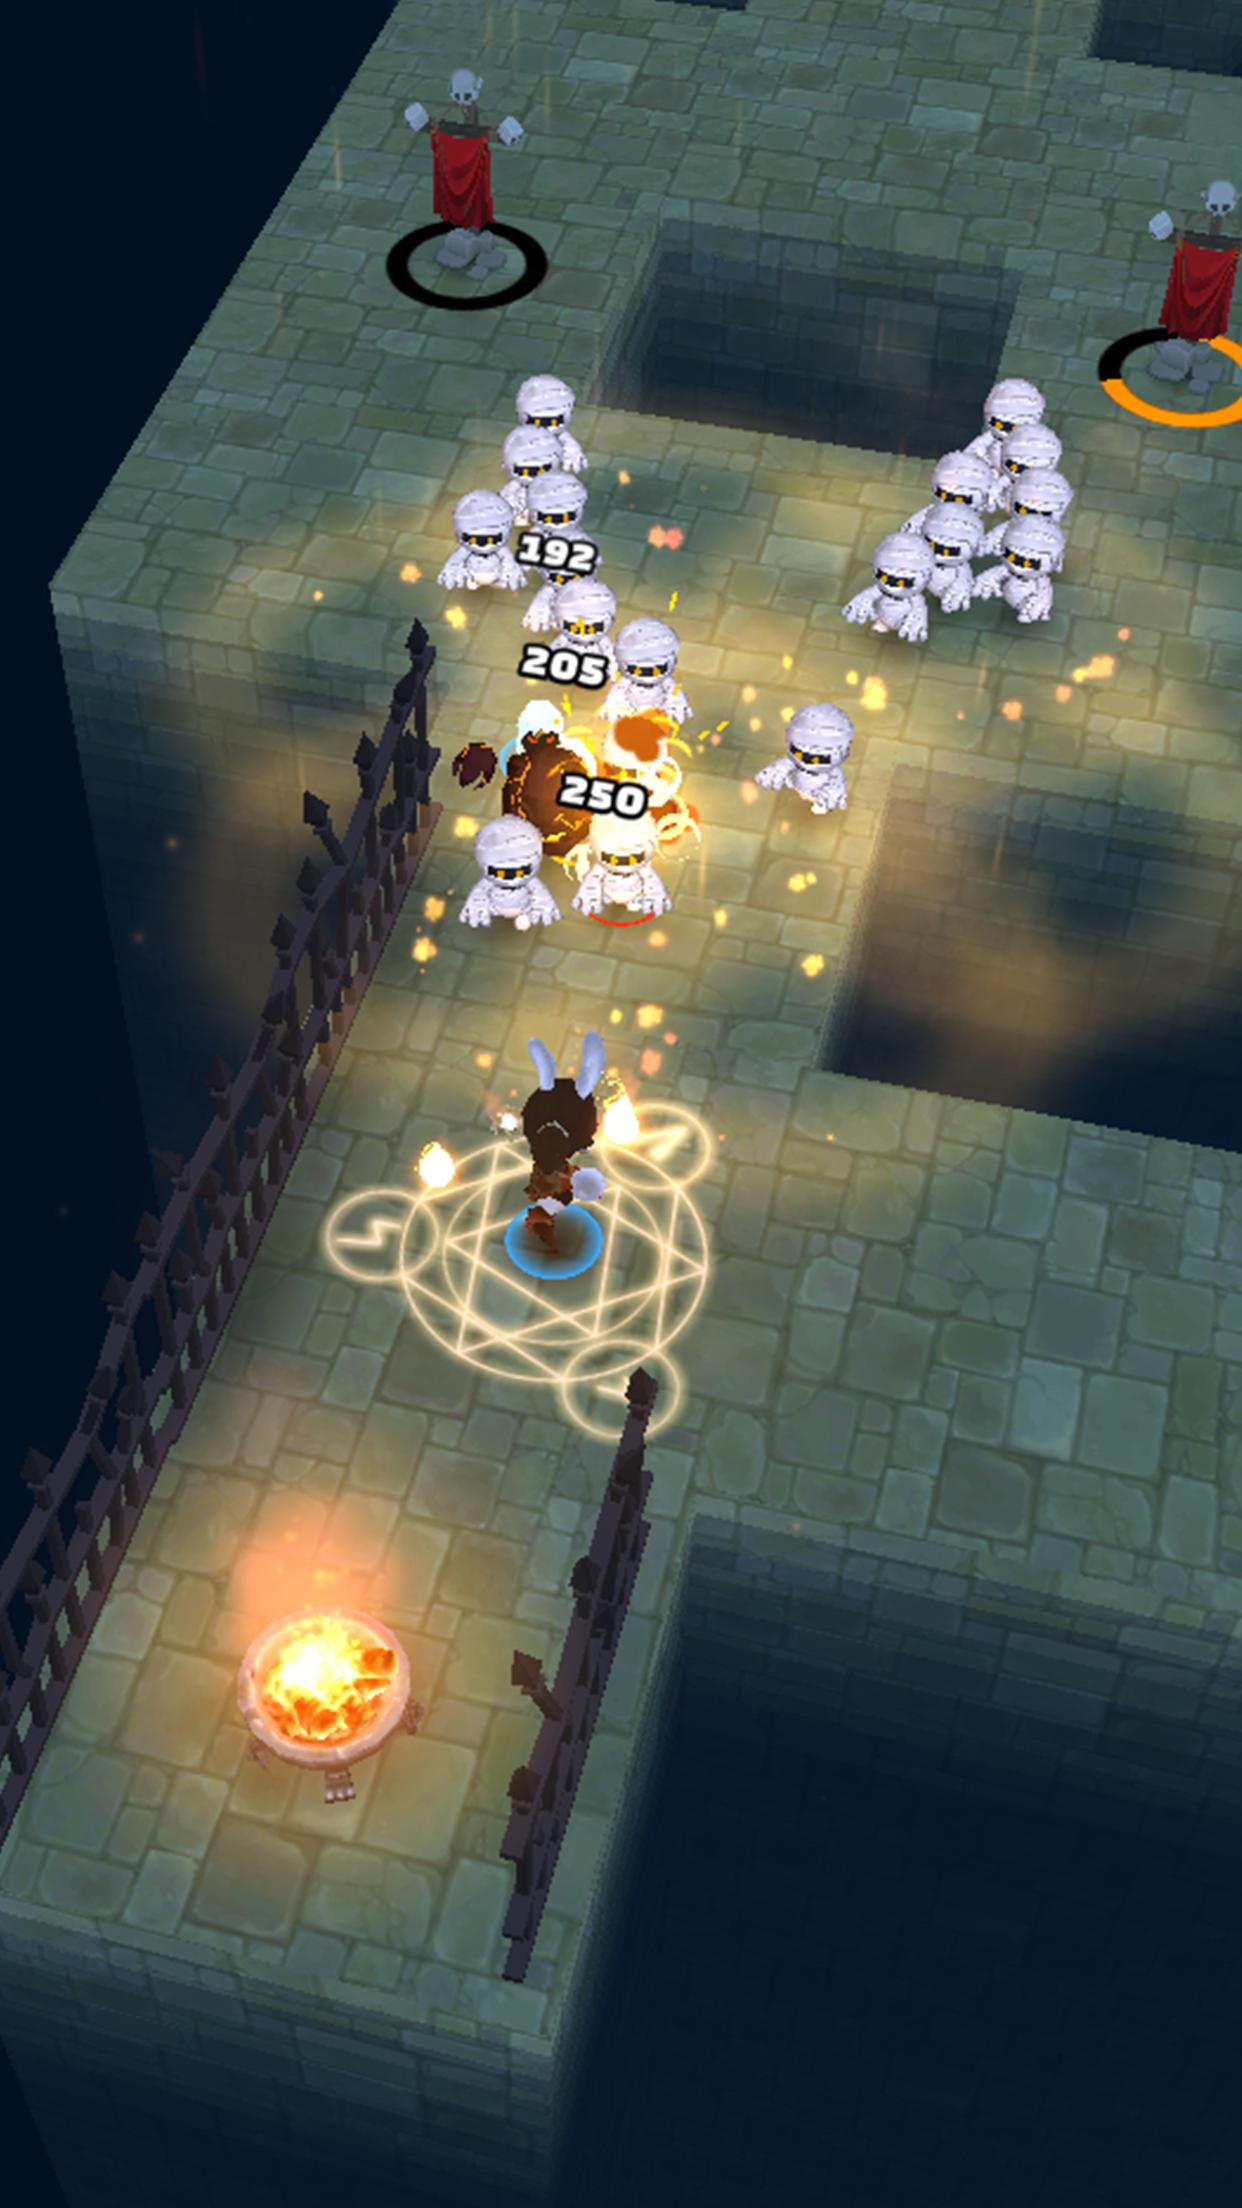 Tiny Fantasy: Epic Action Adventure RPG Game Review